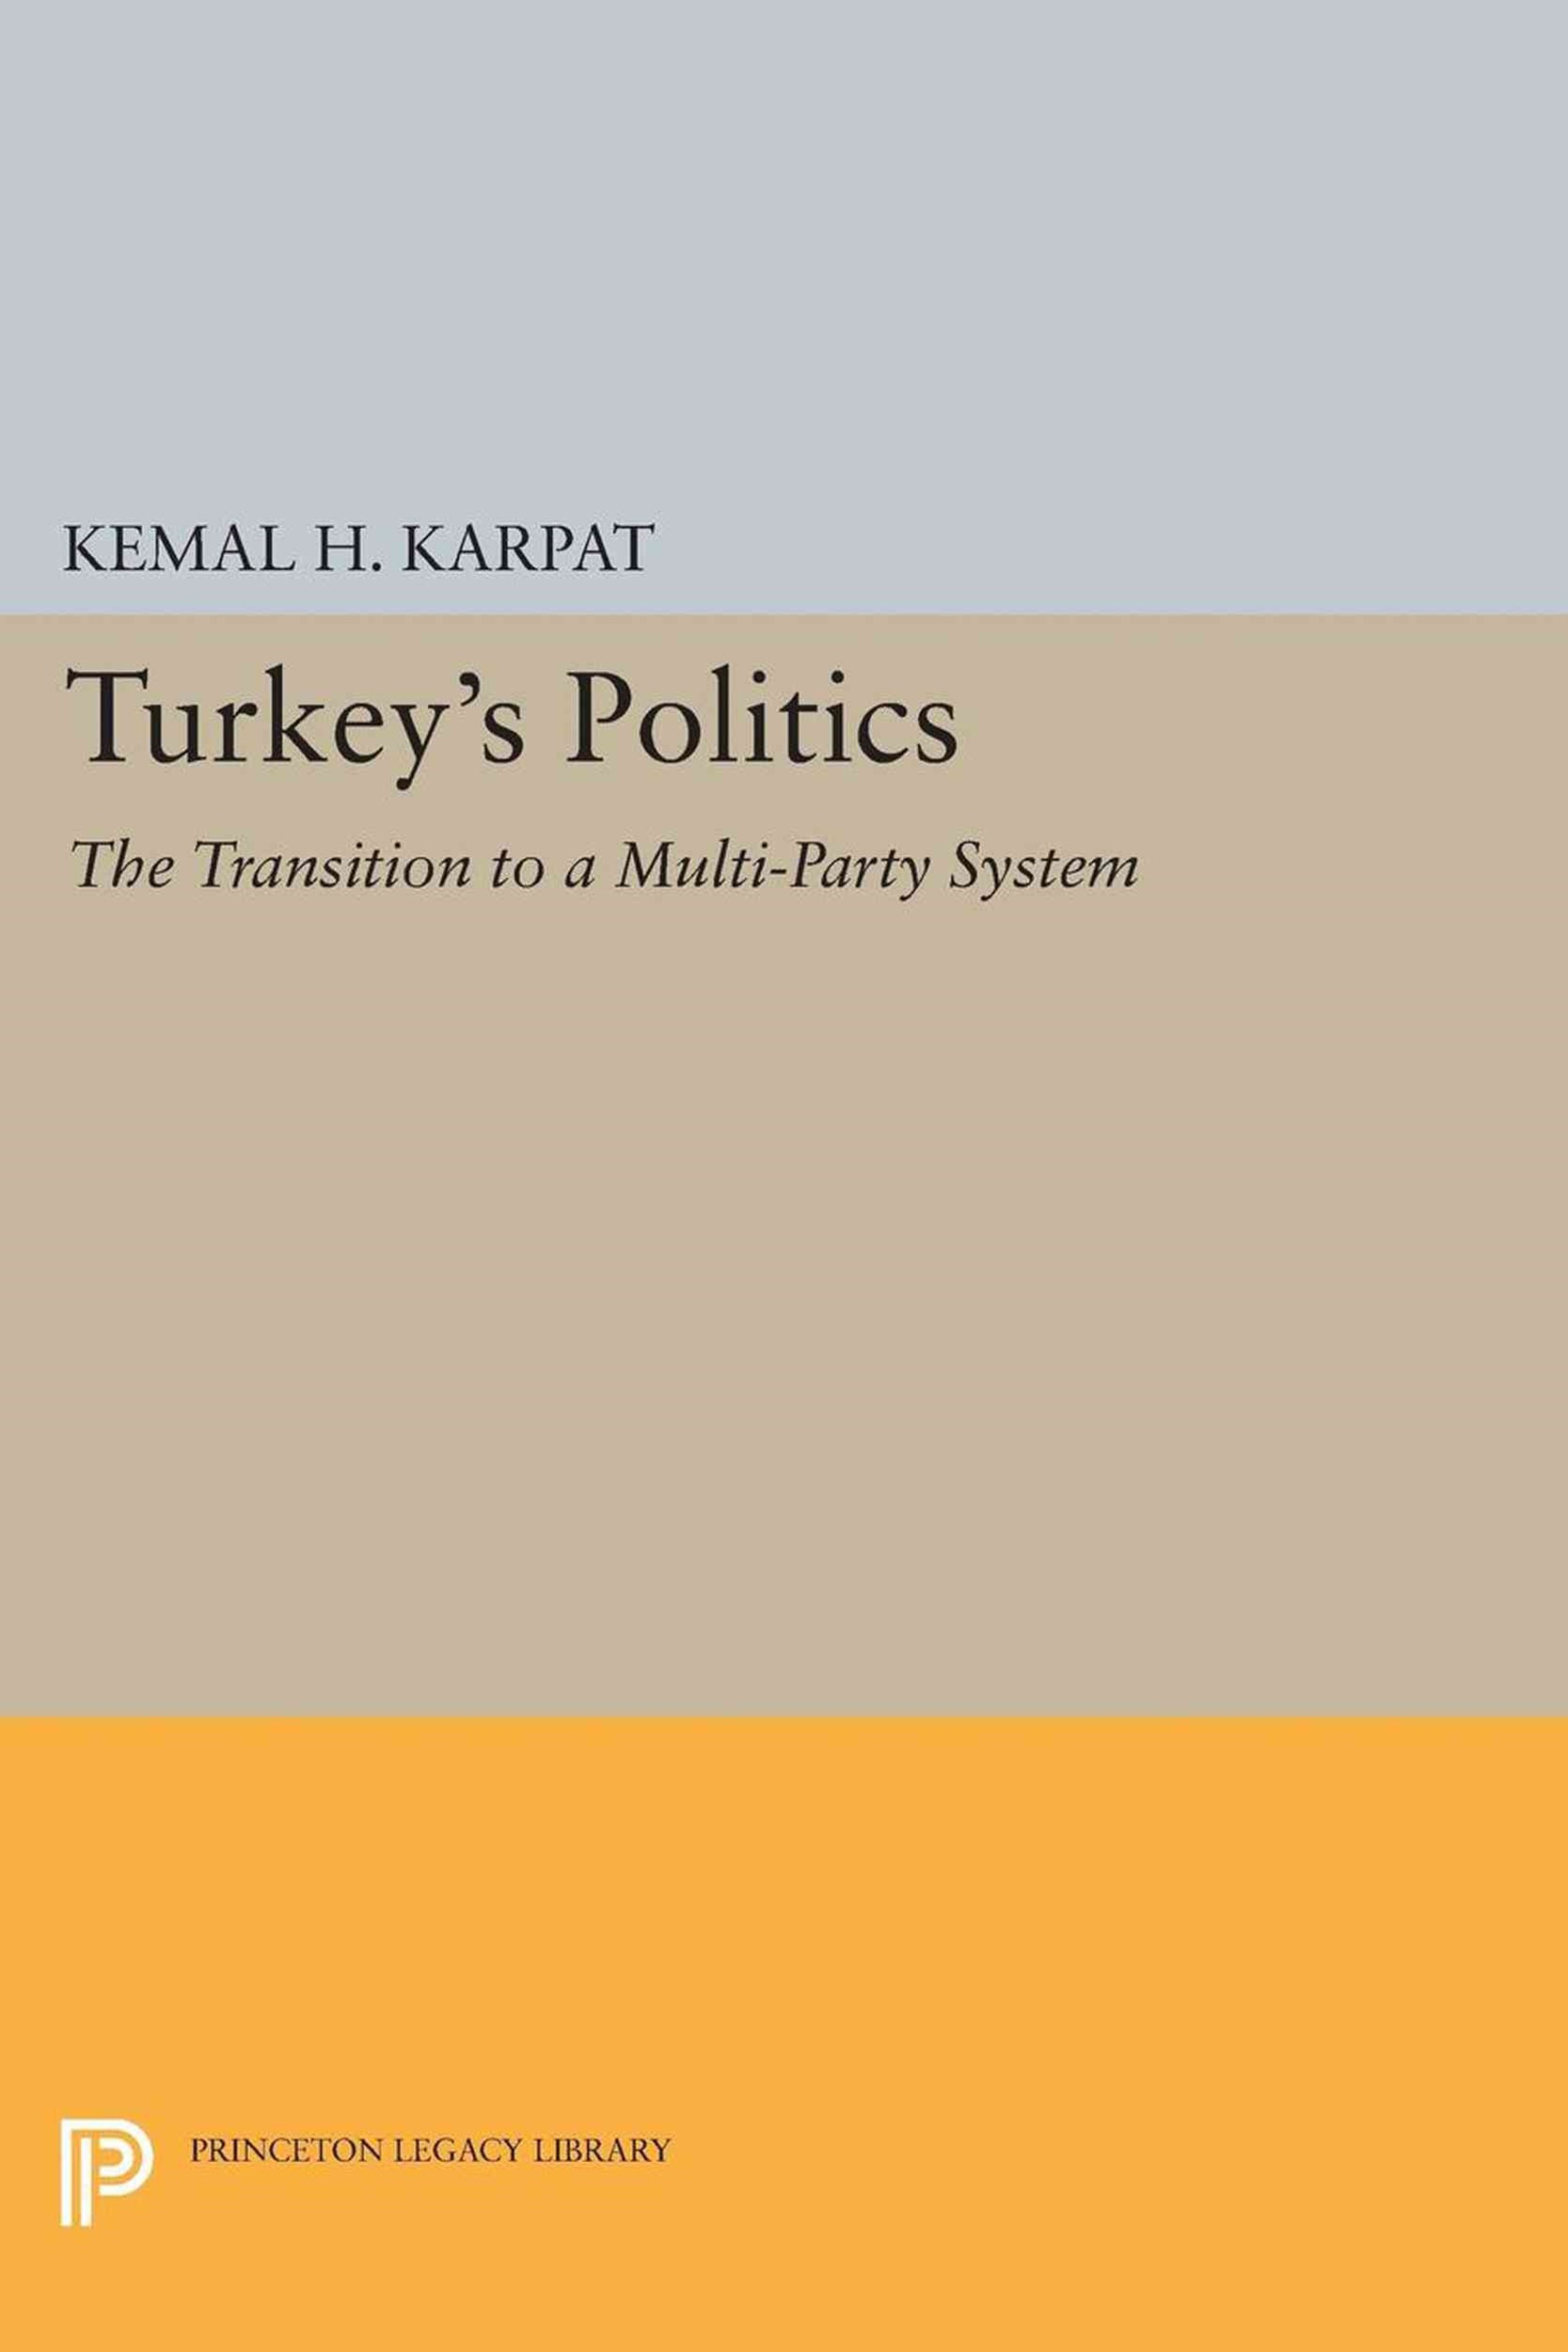 Turkey's Politics